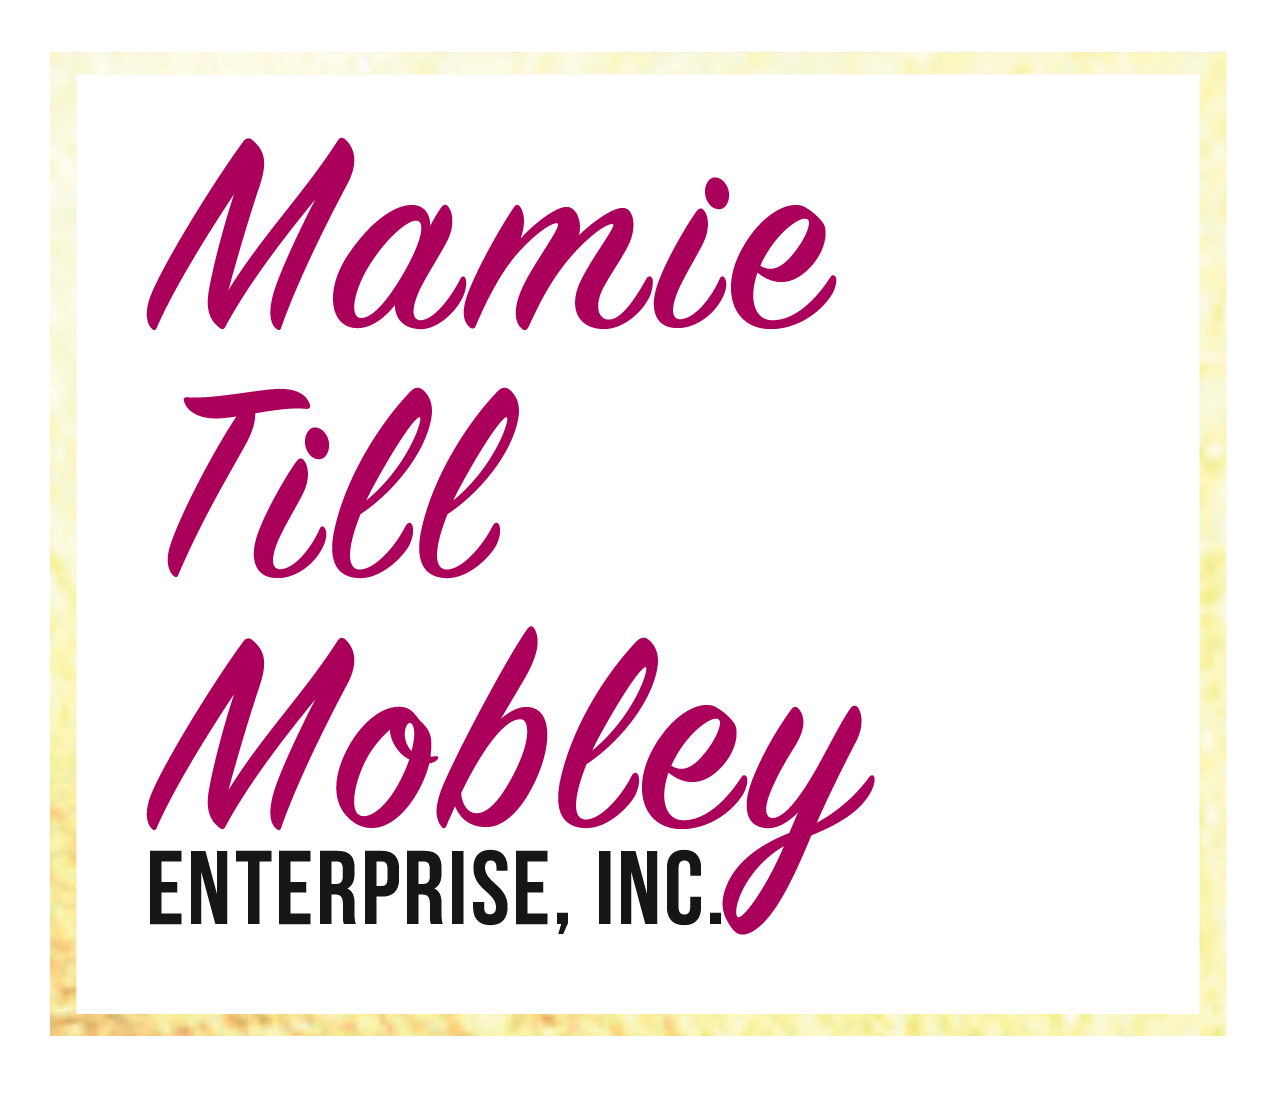 Mamie Till Mobley Enterprise, Inc.